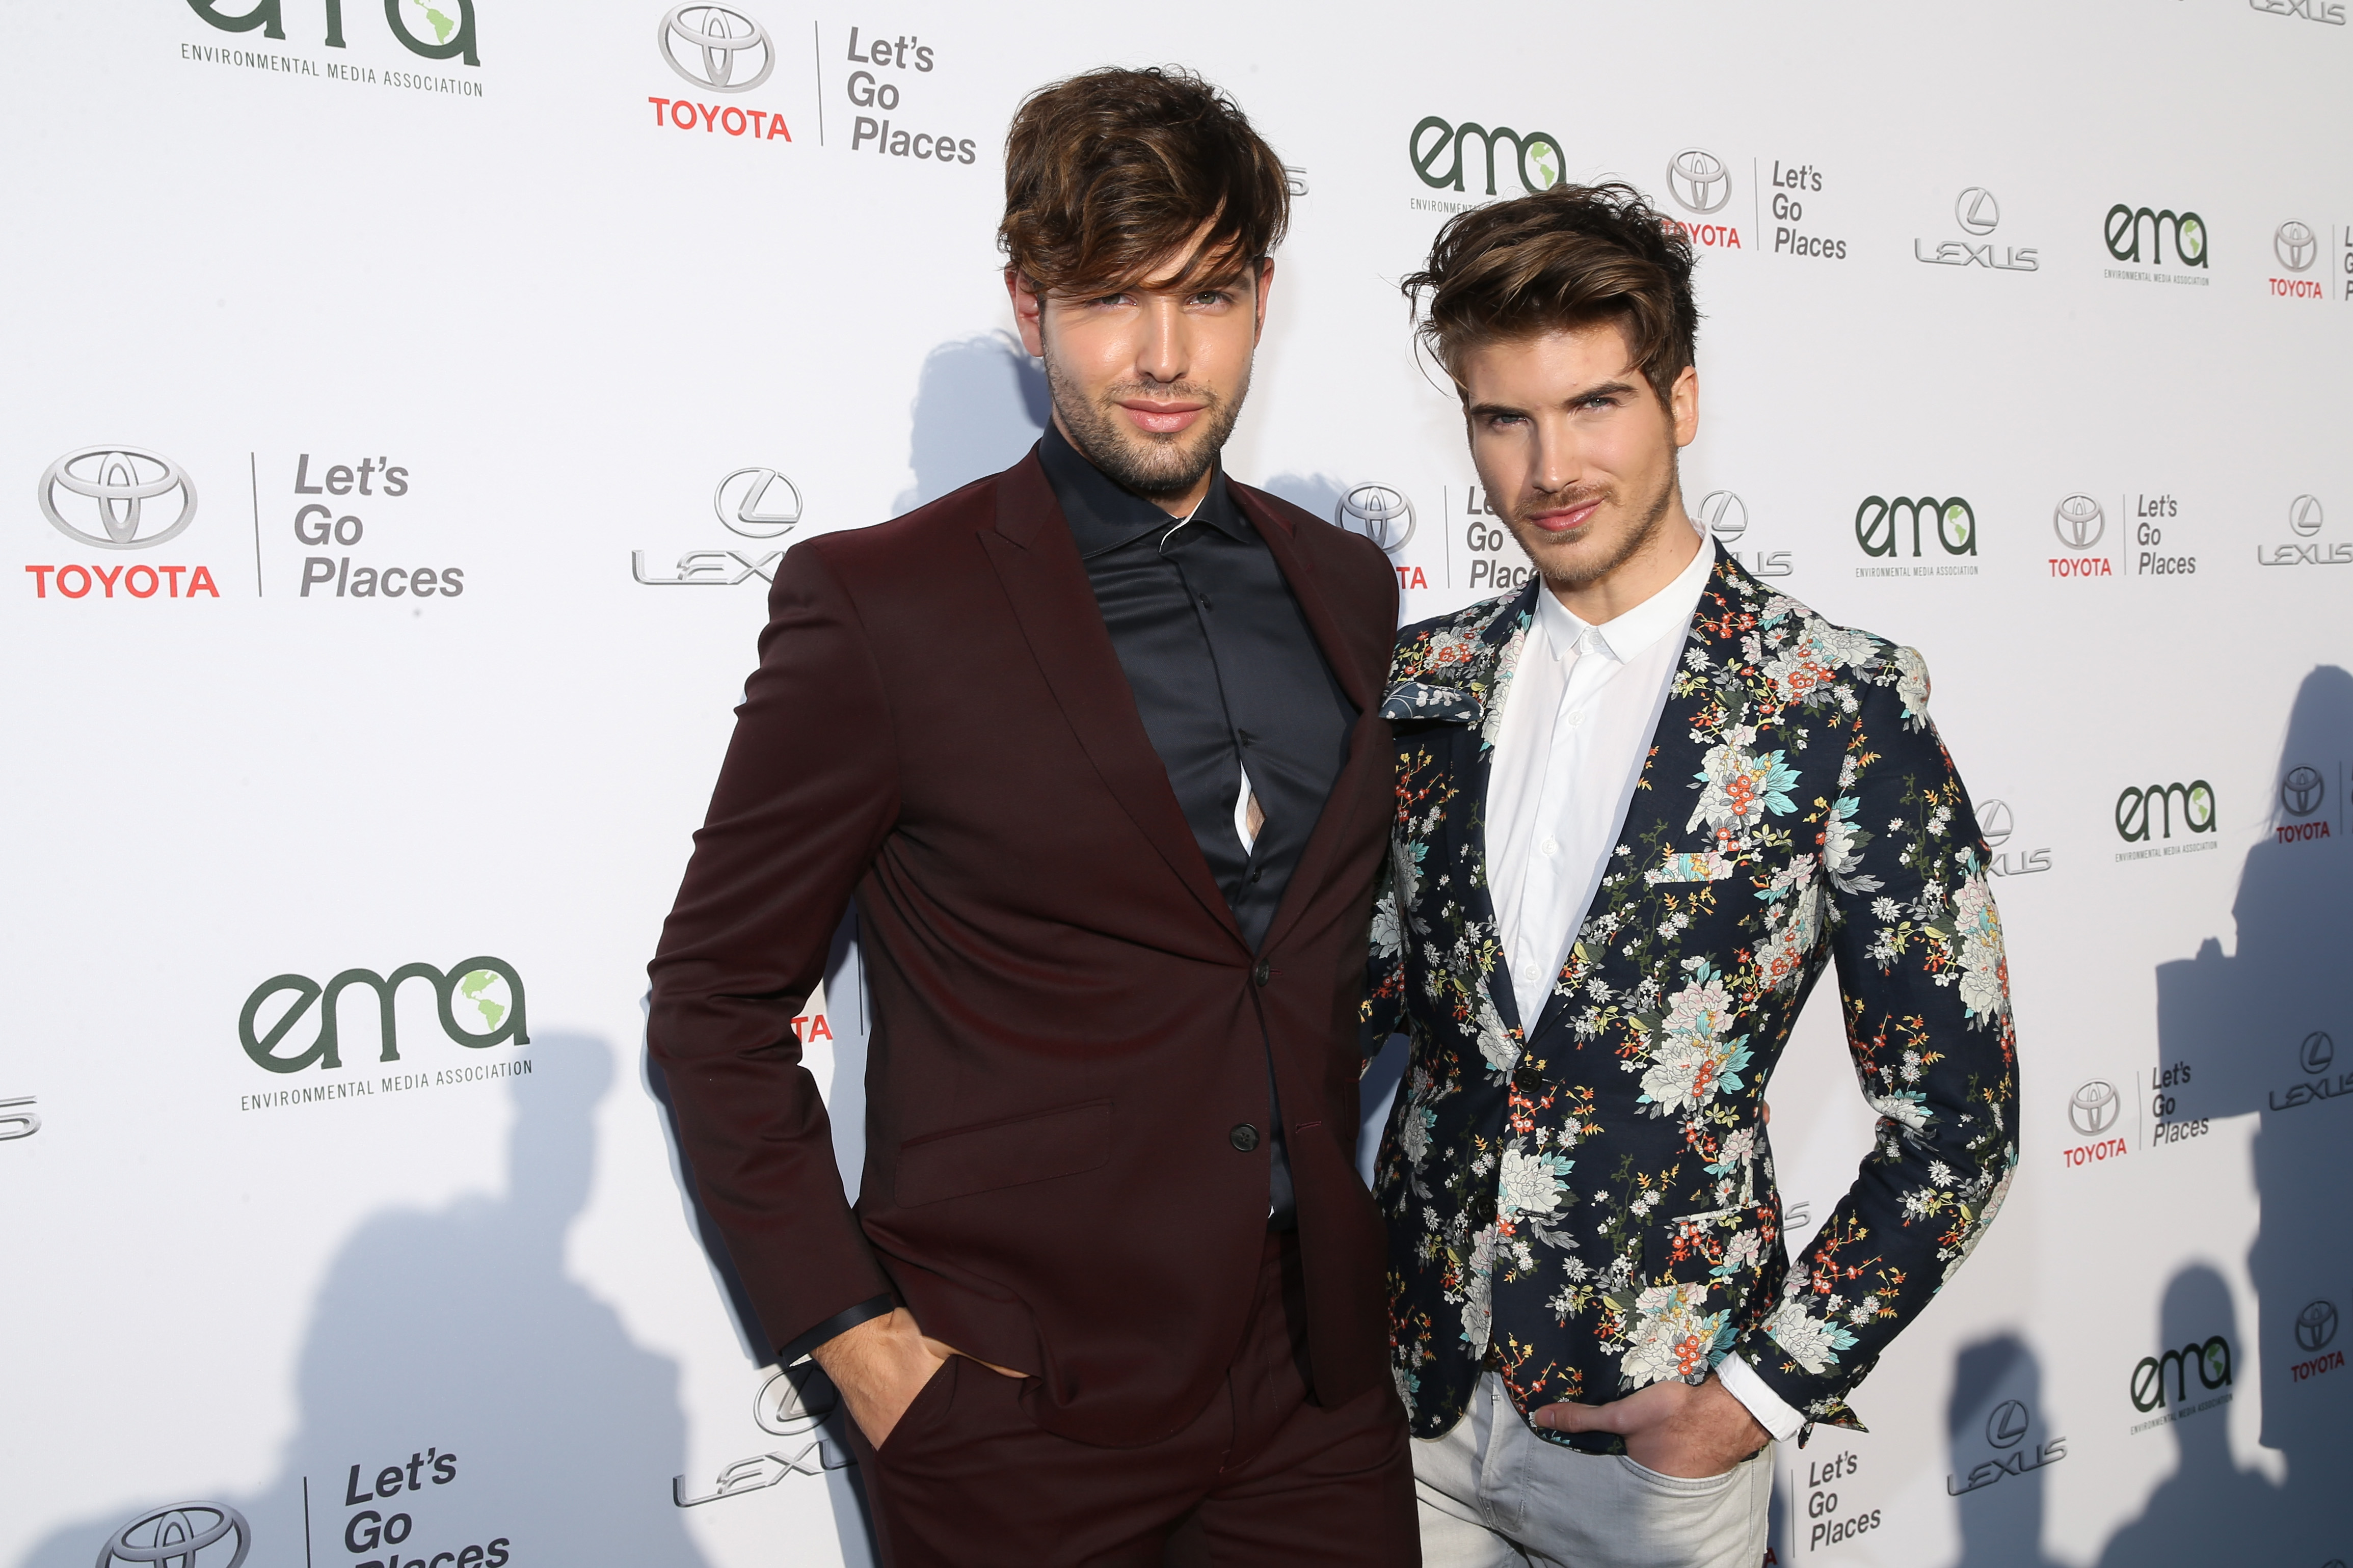 Joey Graceffa on the struggles of being an LGBT role model and playing YouTube's 'game'